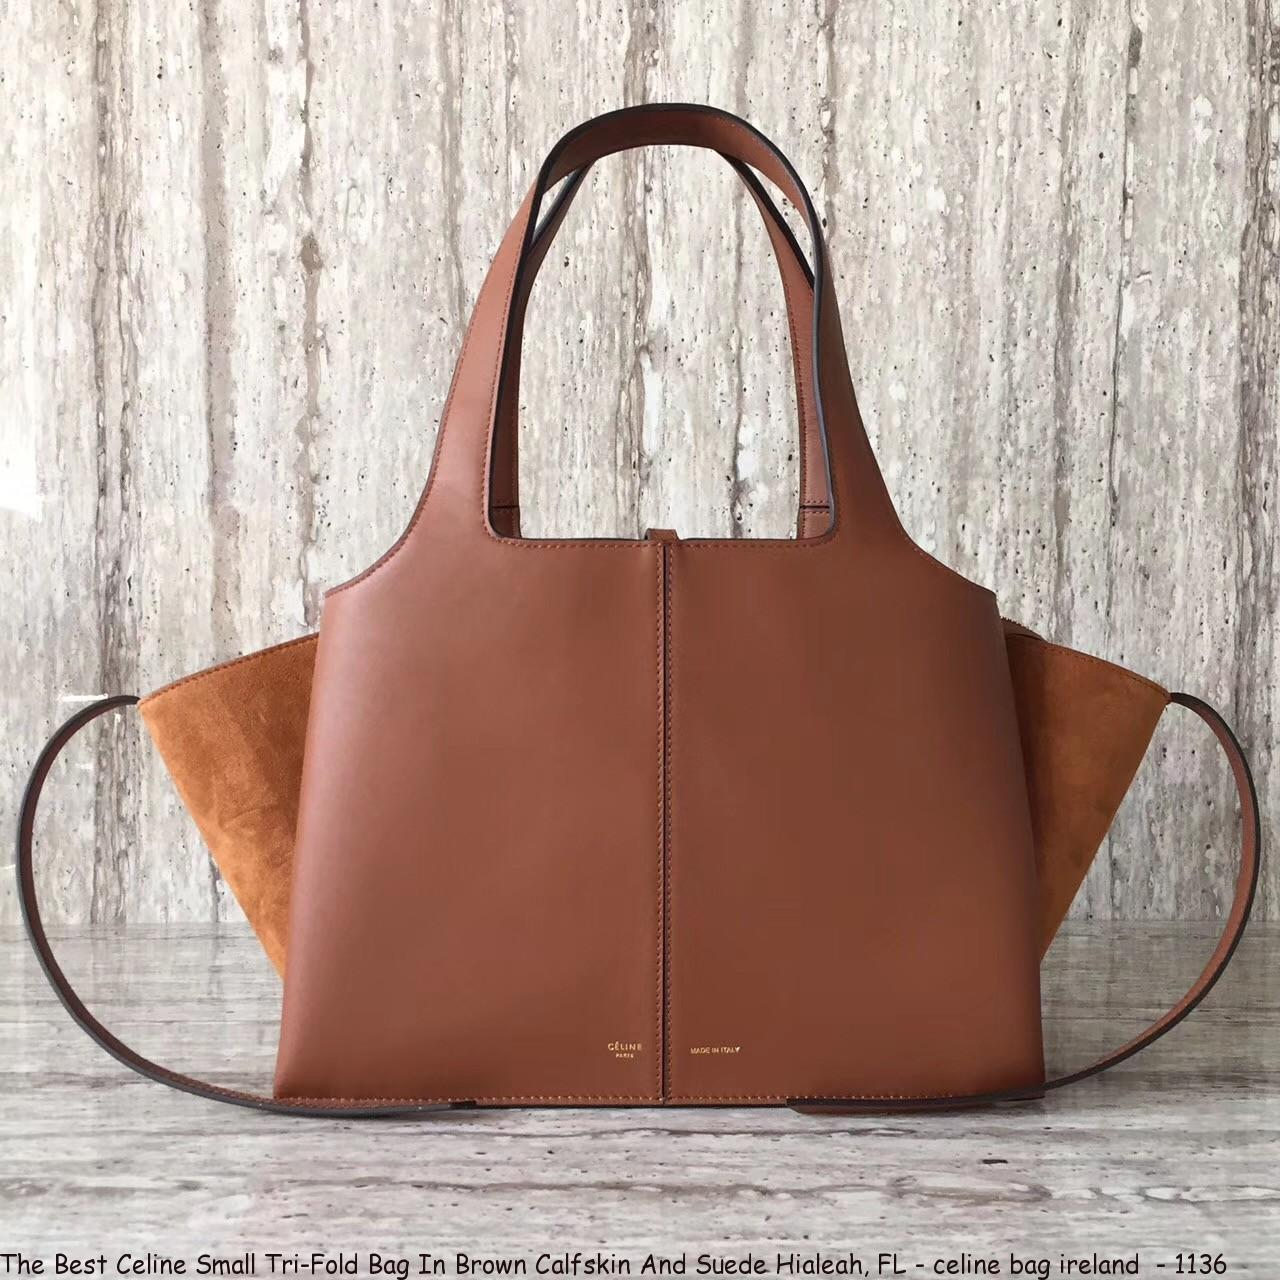 d657da54eb5 The Best Celine Small Tri-Fold Bag In Brown Calfskin And Suede Hialeah, FL  - celine bag ireland - 1136